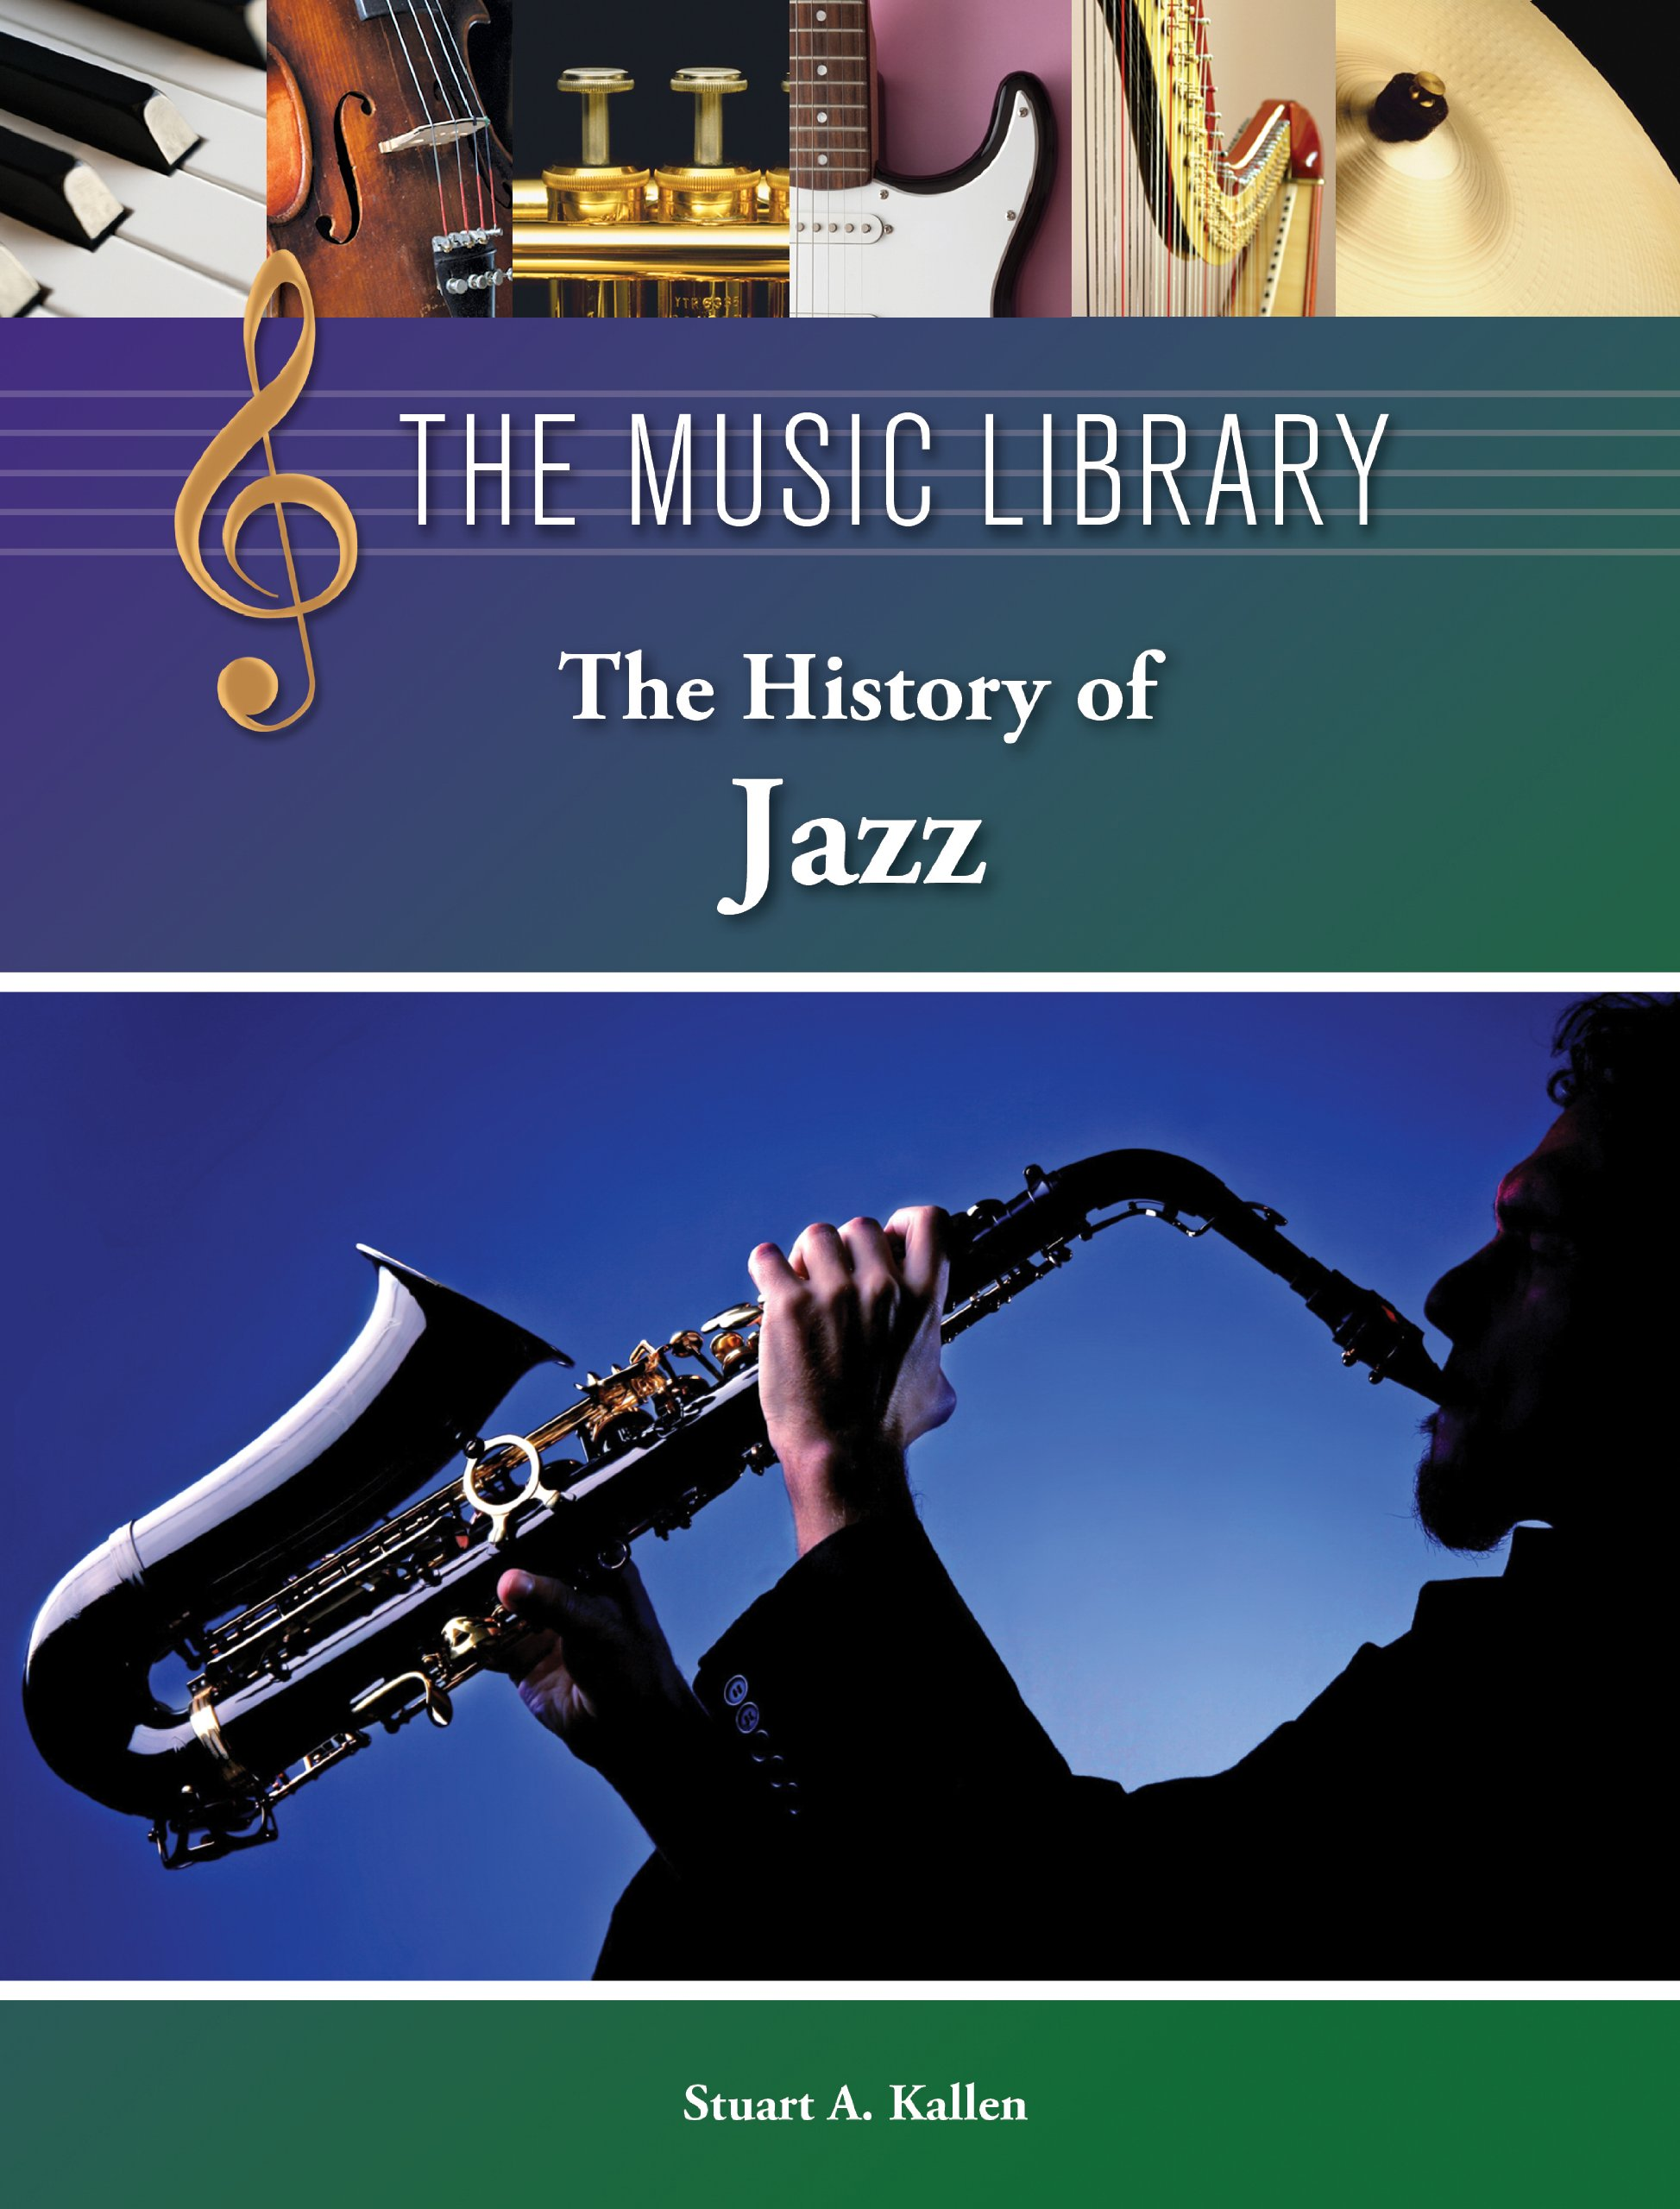 The History of Jazz (The Music Library) PDF